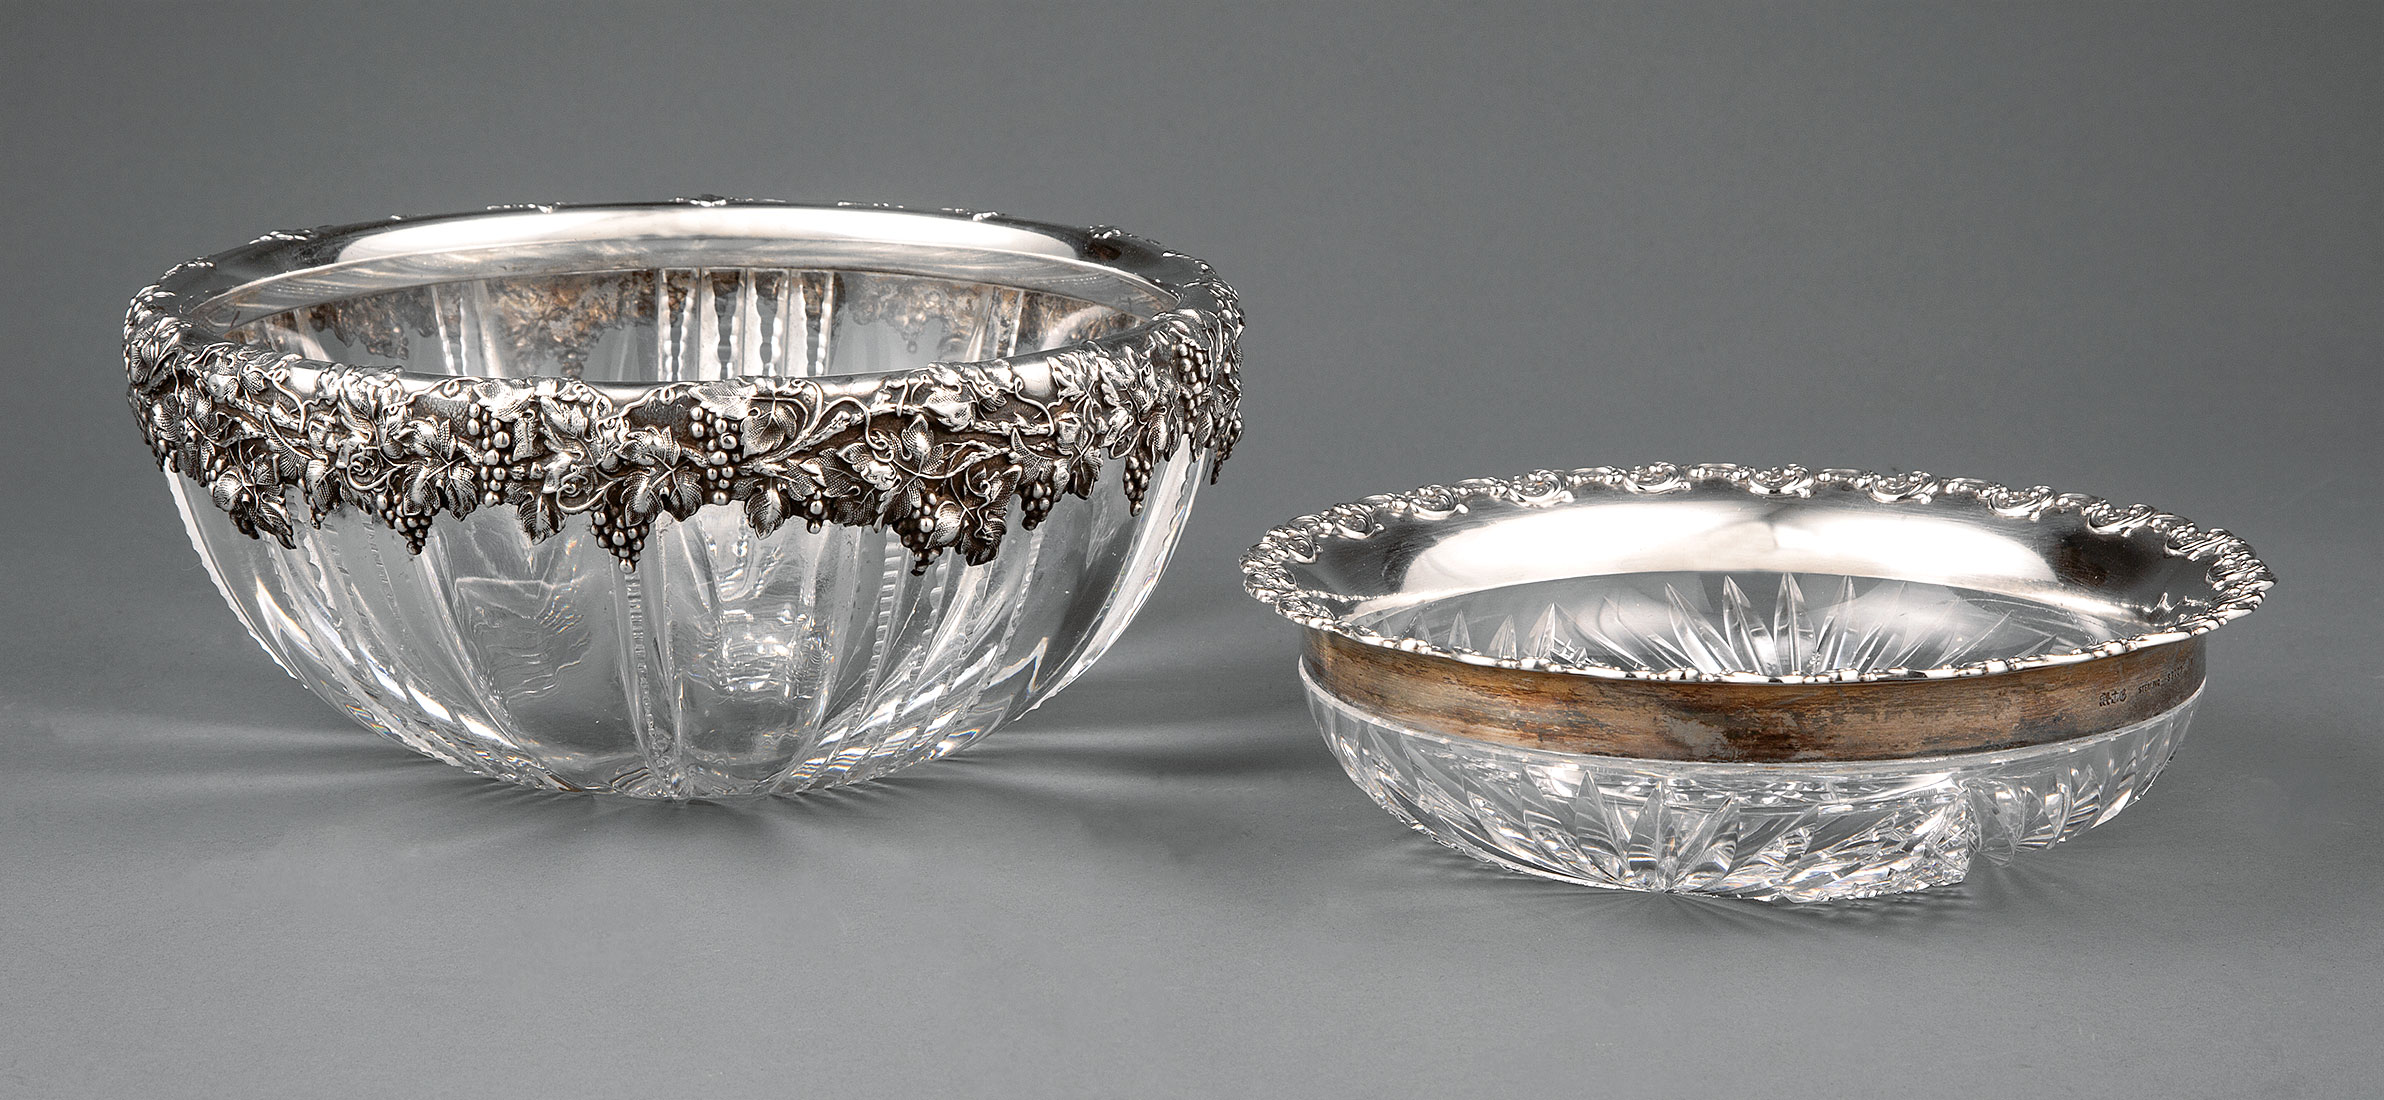 Lot 236 - Two American Brilliant Cut Glass Bowls with Gorham Sterling Silver Mounts , c. 1900, incl. example